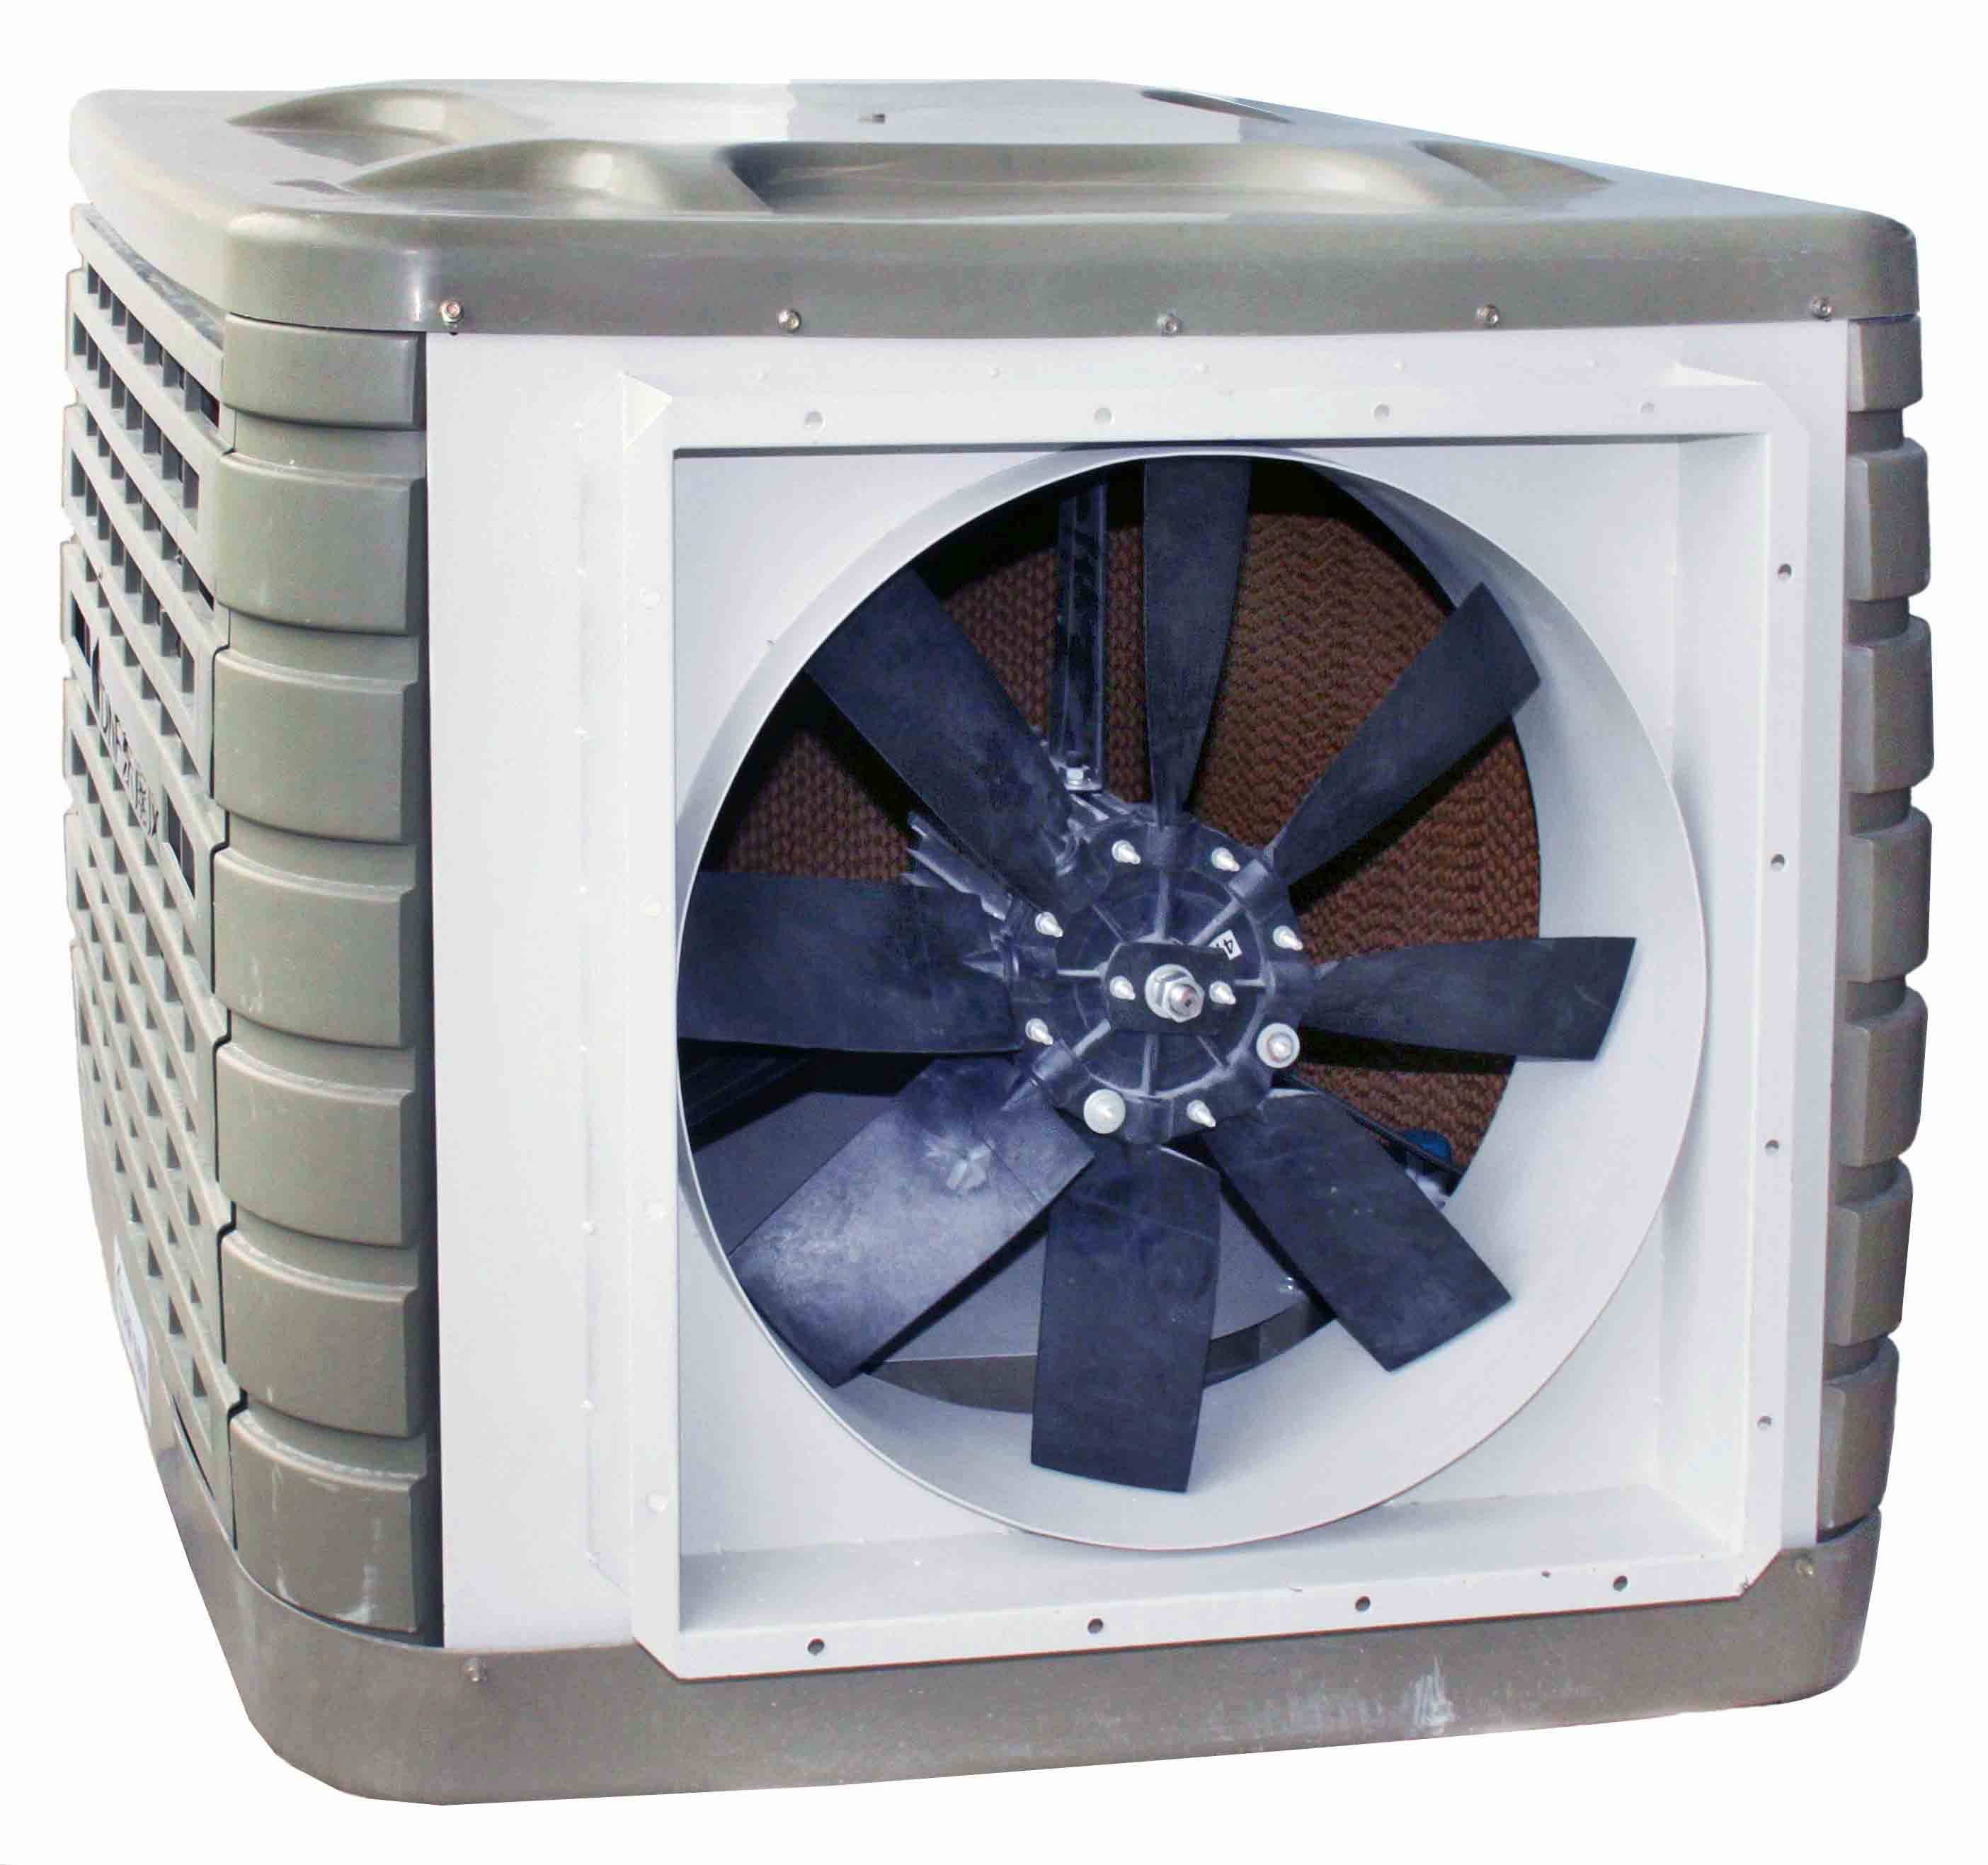 AIR FRESH AIR COOLING EVAPORATIVE AIR COOLER